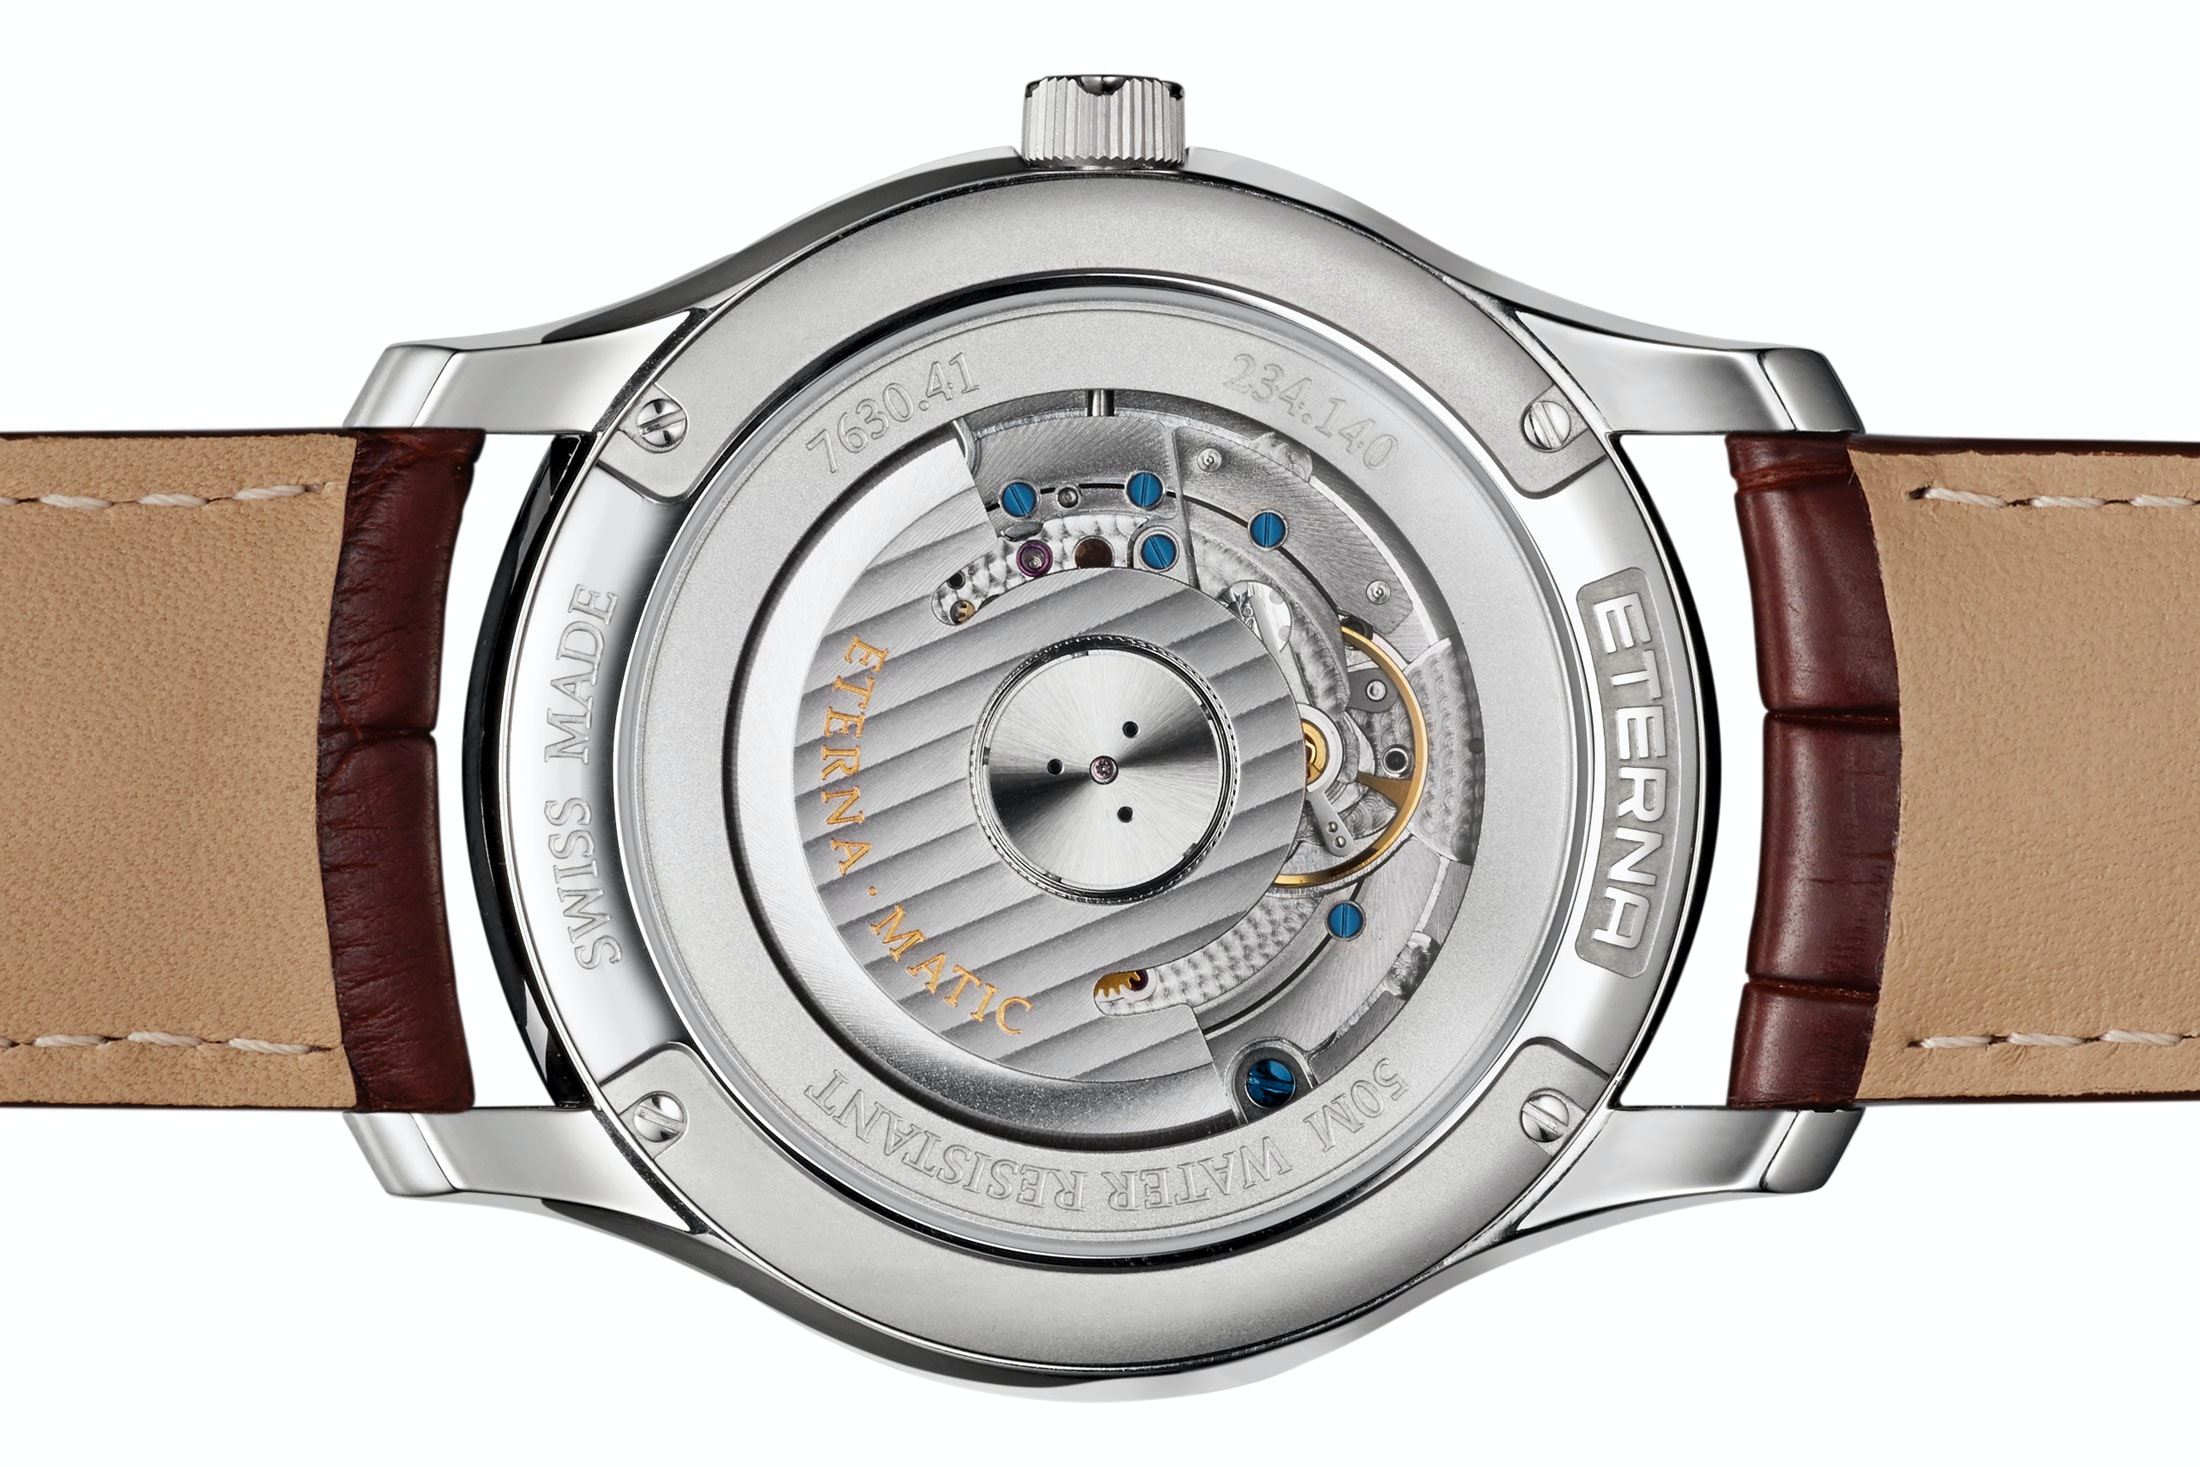 emc 3030 eterna movement caliber Introducing: The Eterna Granges 1856 Collection Introducing: The Eterna Granges 1856 Collection eterna 3